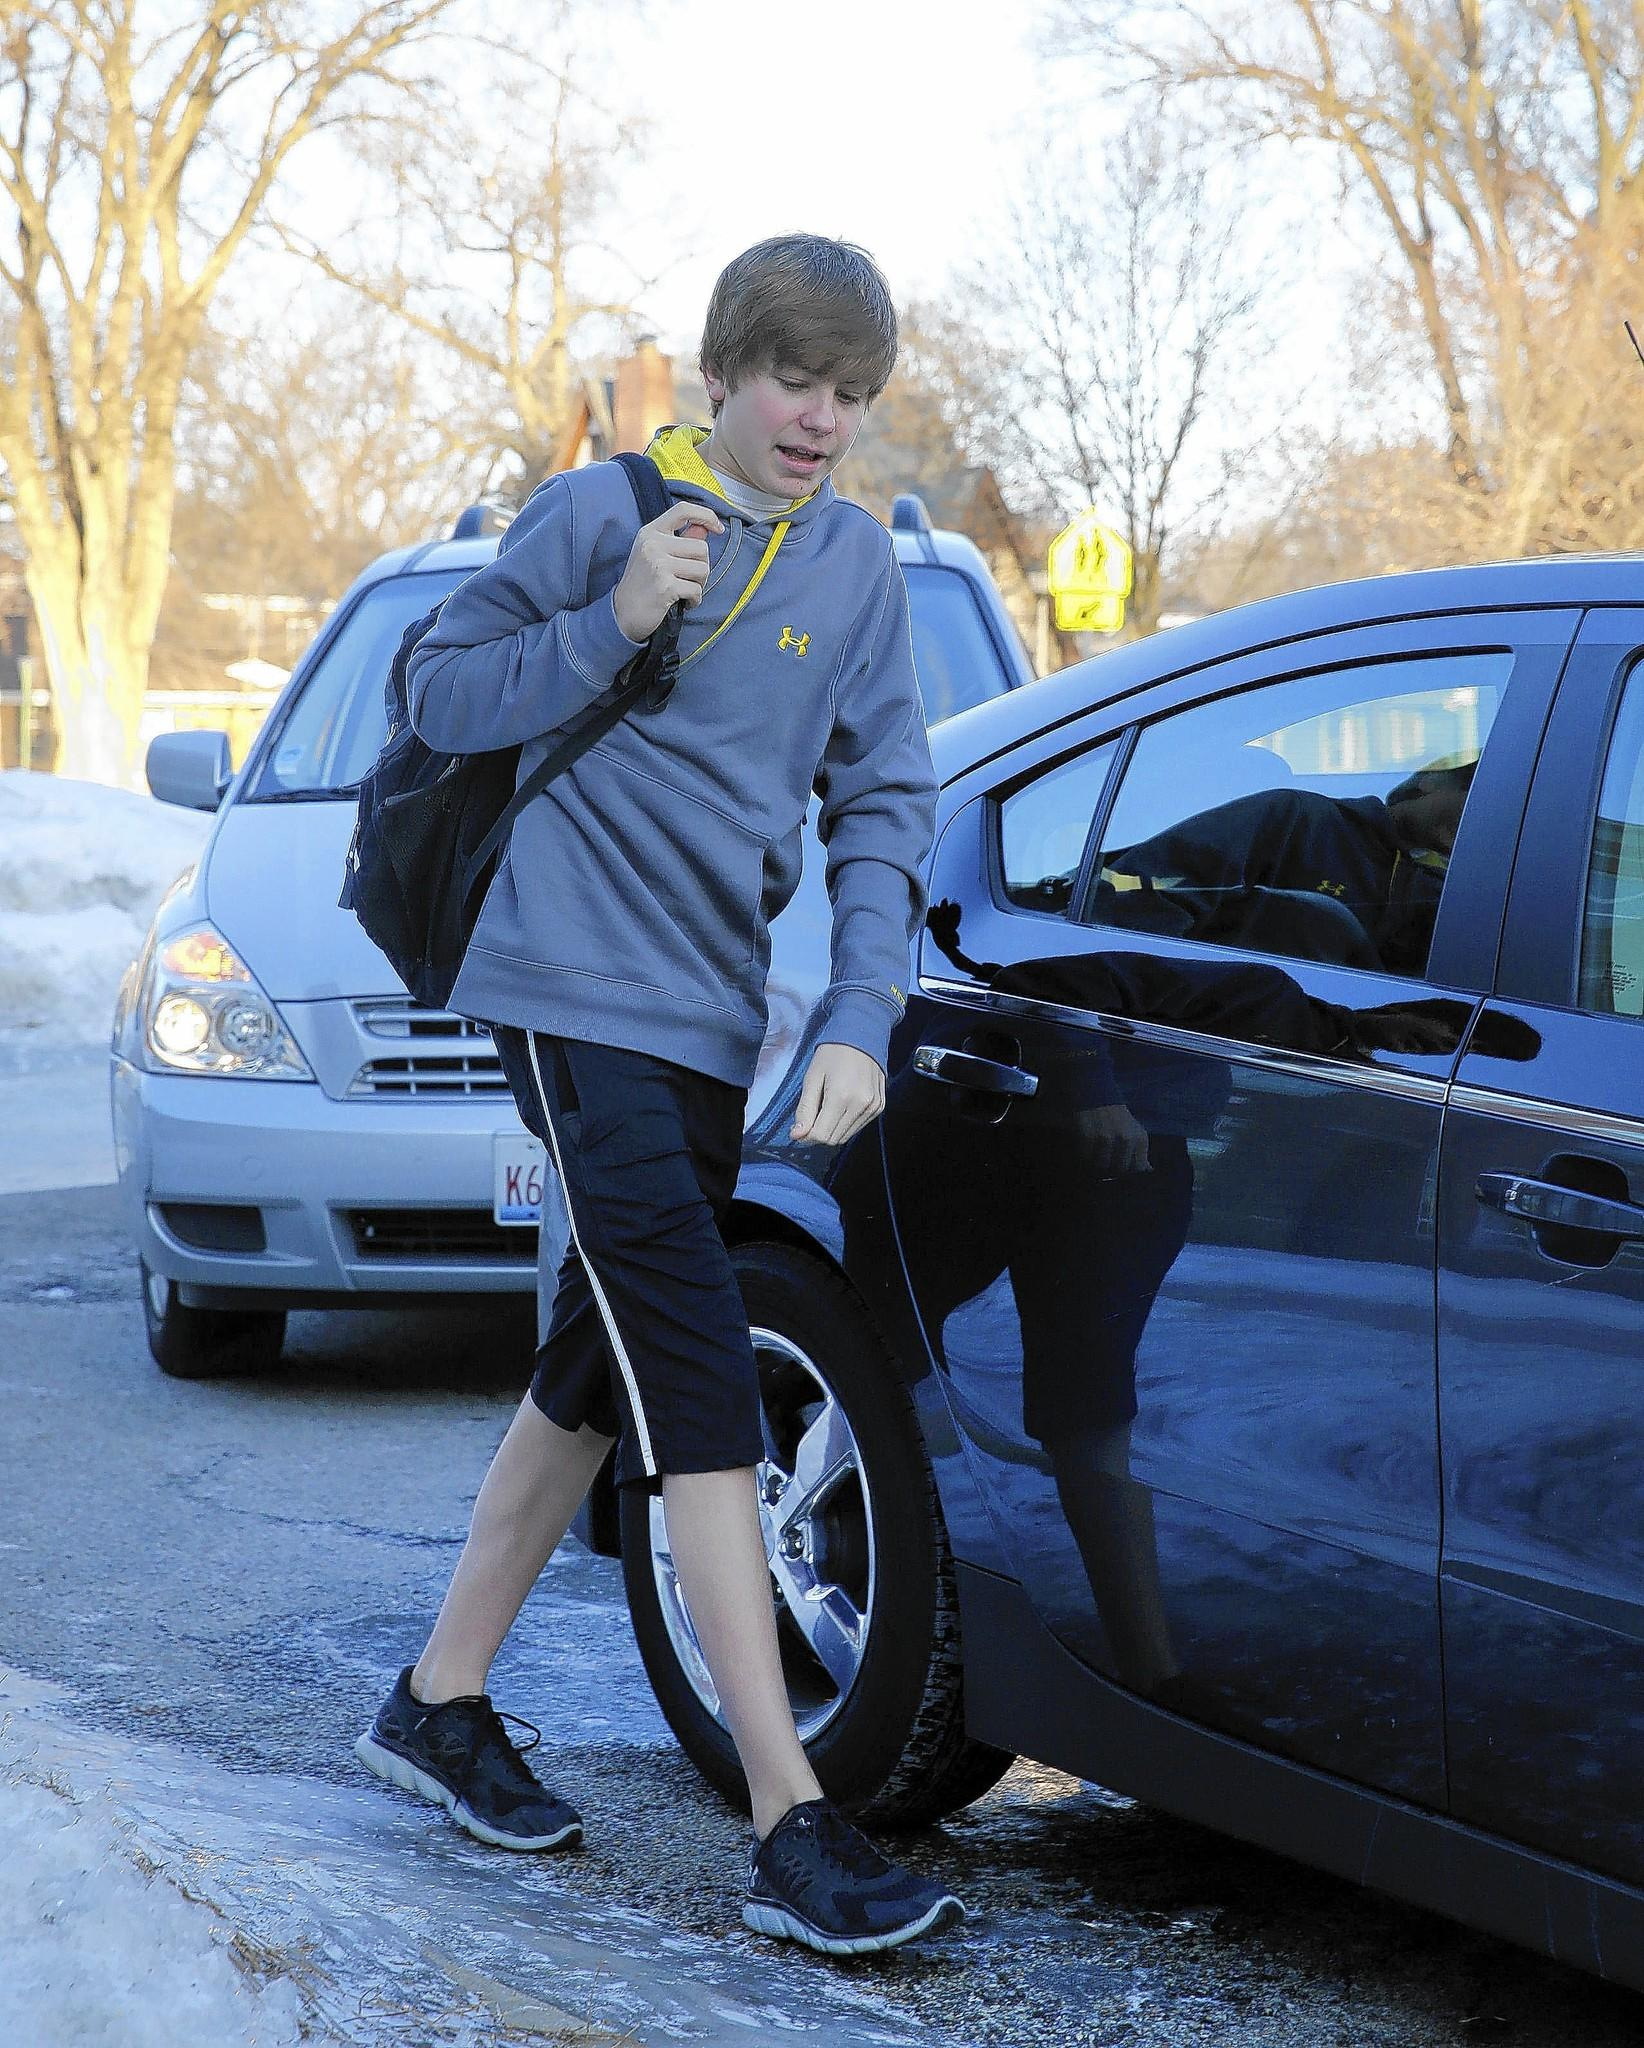 """York Community High School freshman Evan Haug shrugs off a recent 7-degree chill, clad as usual in shorts. """"It's nice and warm in the school, so there's no reason to wear jeans,"""" Evan said."""